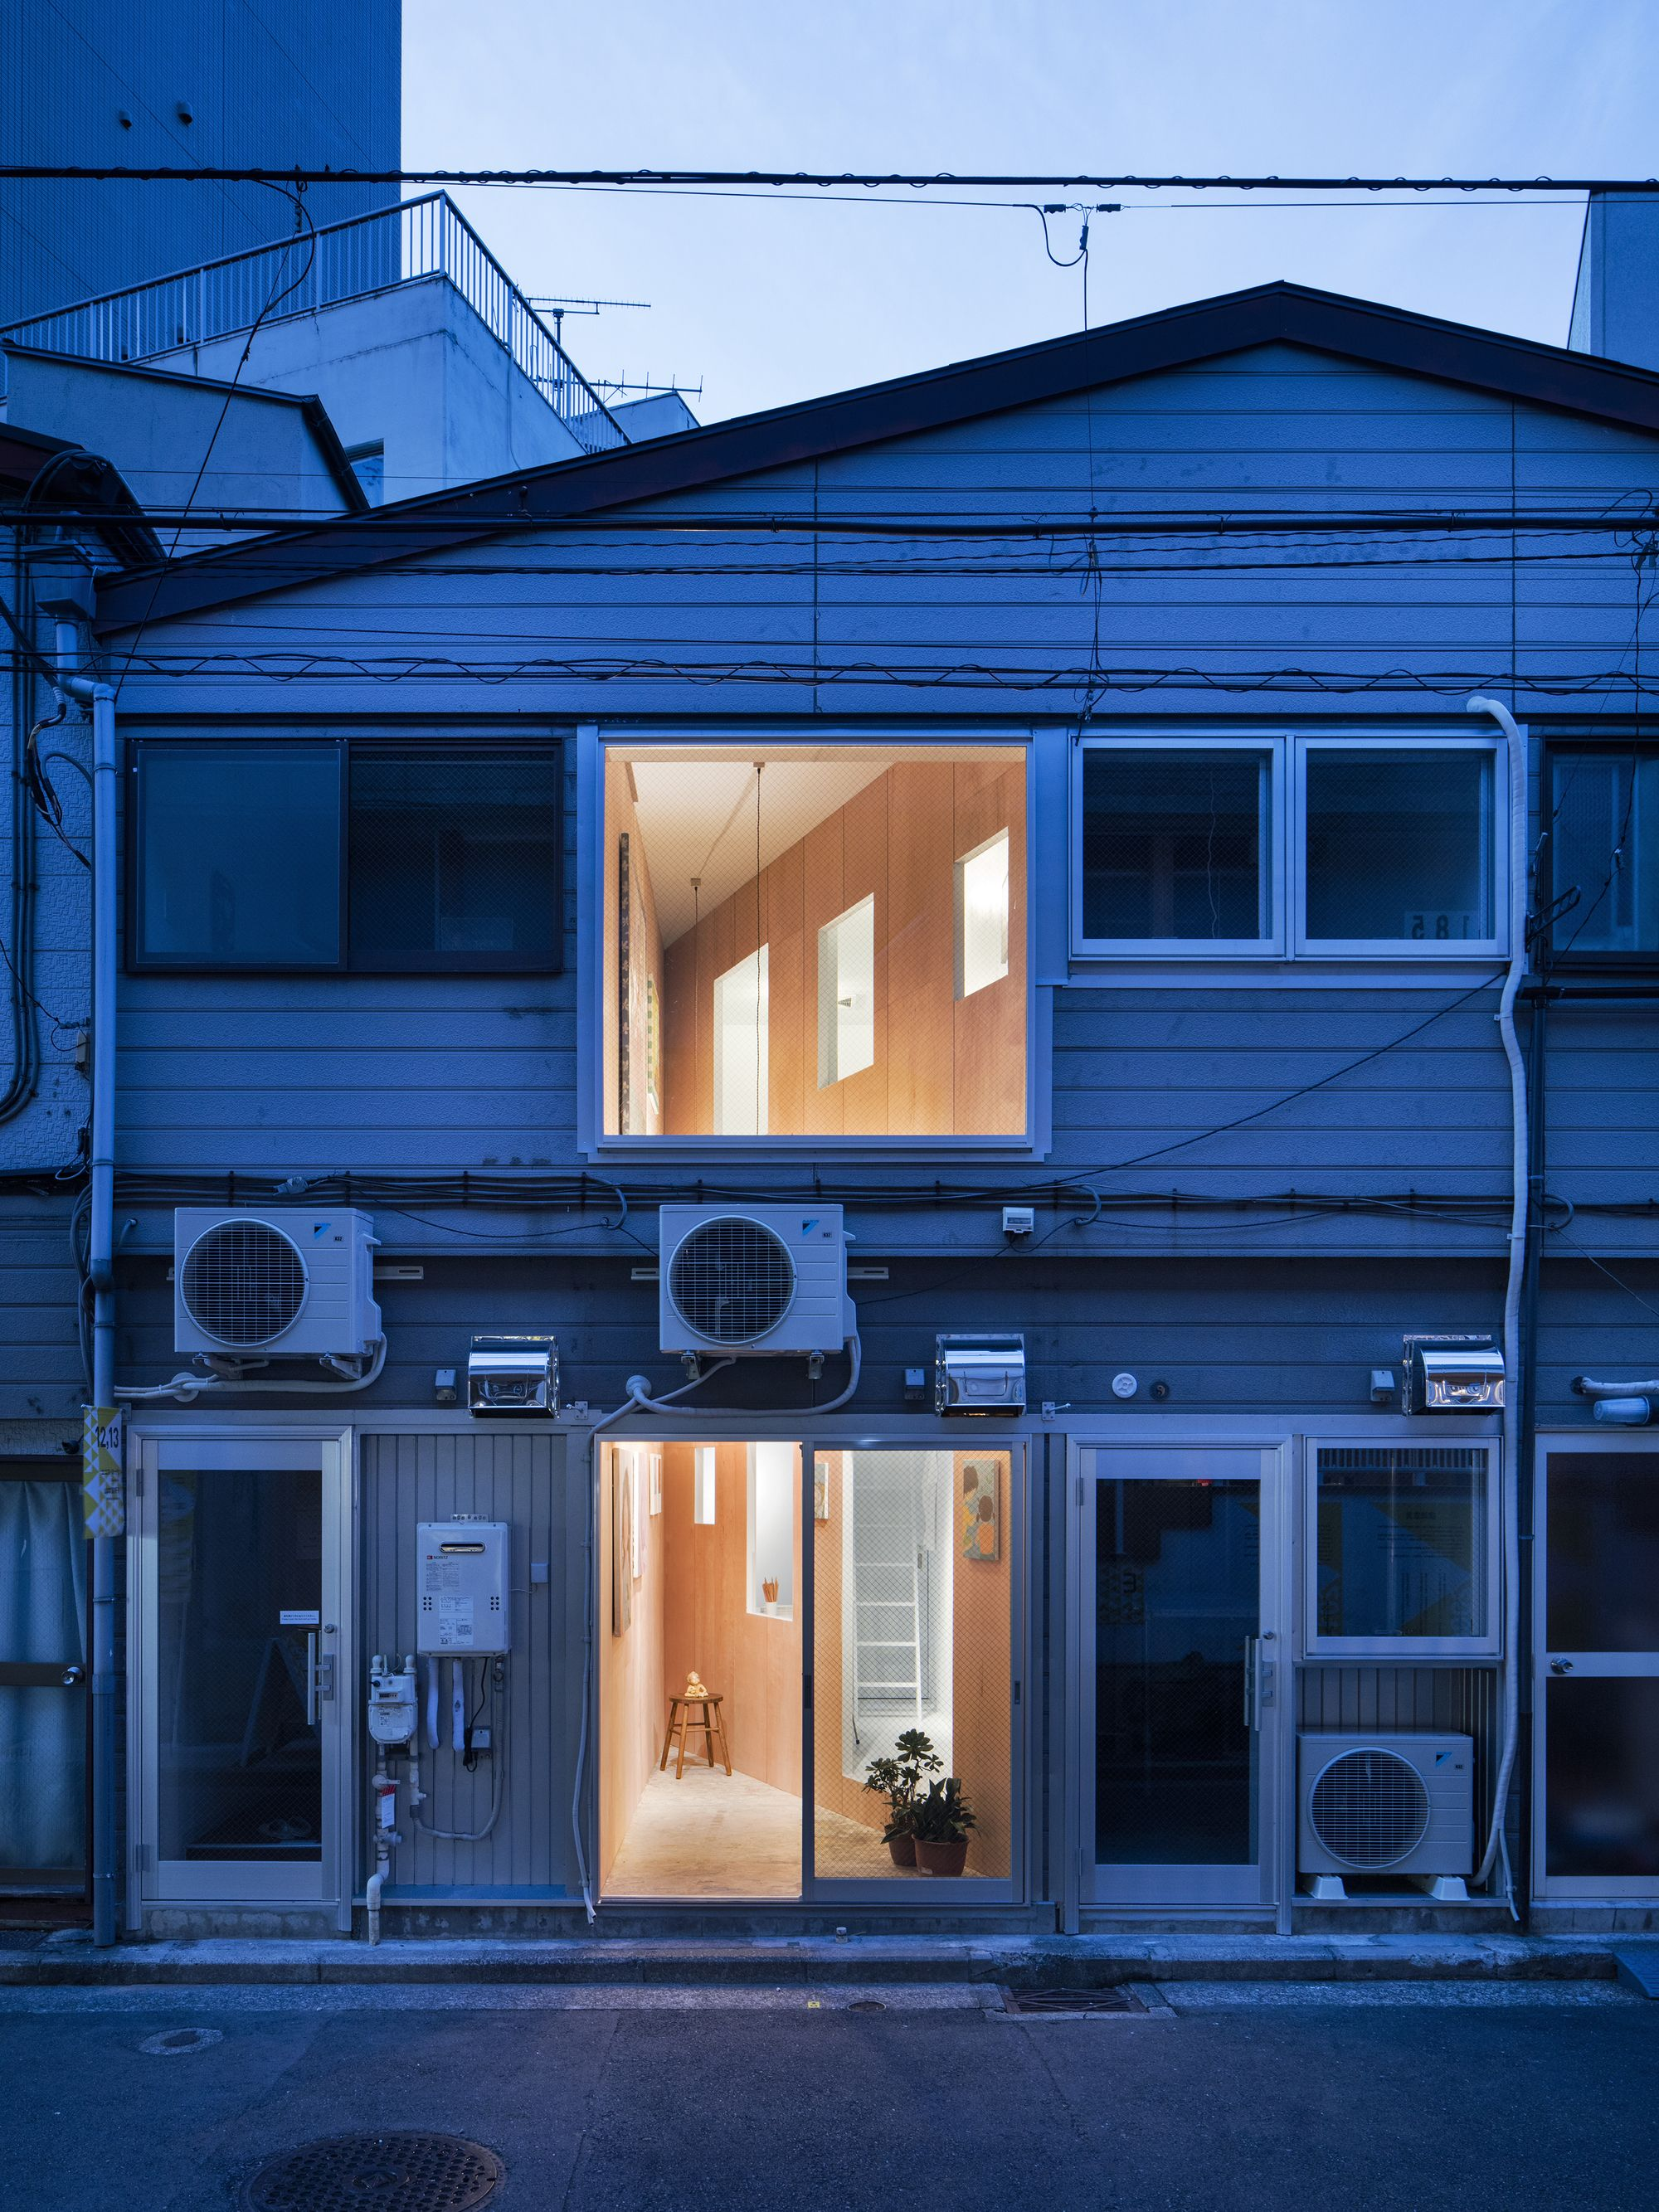 """Completed in 2016 in Japan. Images by Kenta Hasegawa. . This project involved redesigning the former illegal sex shop (common name is """"Chonnoma"""") to the artist in residence as part of """"Koganecho Bazaar..."""